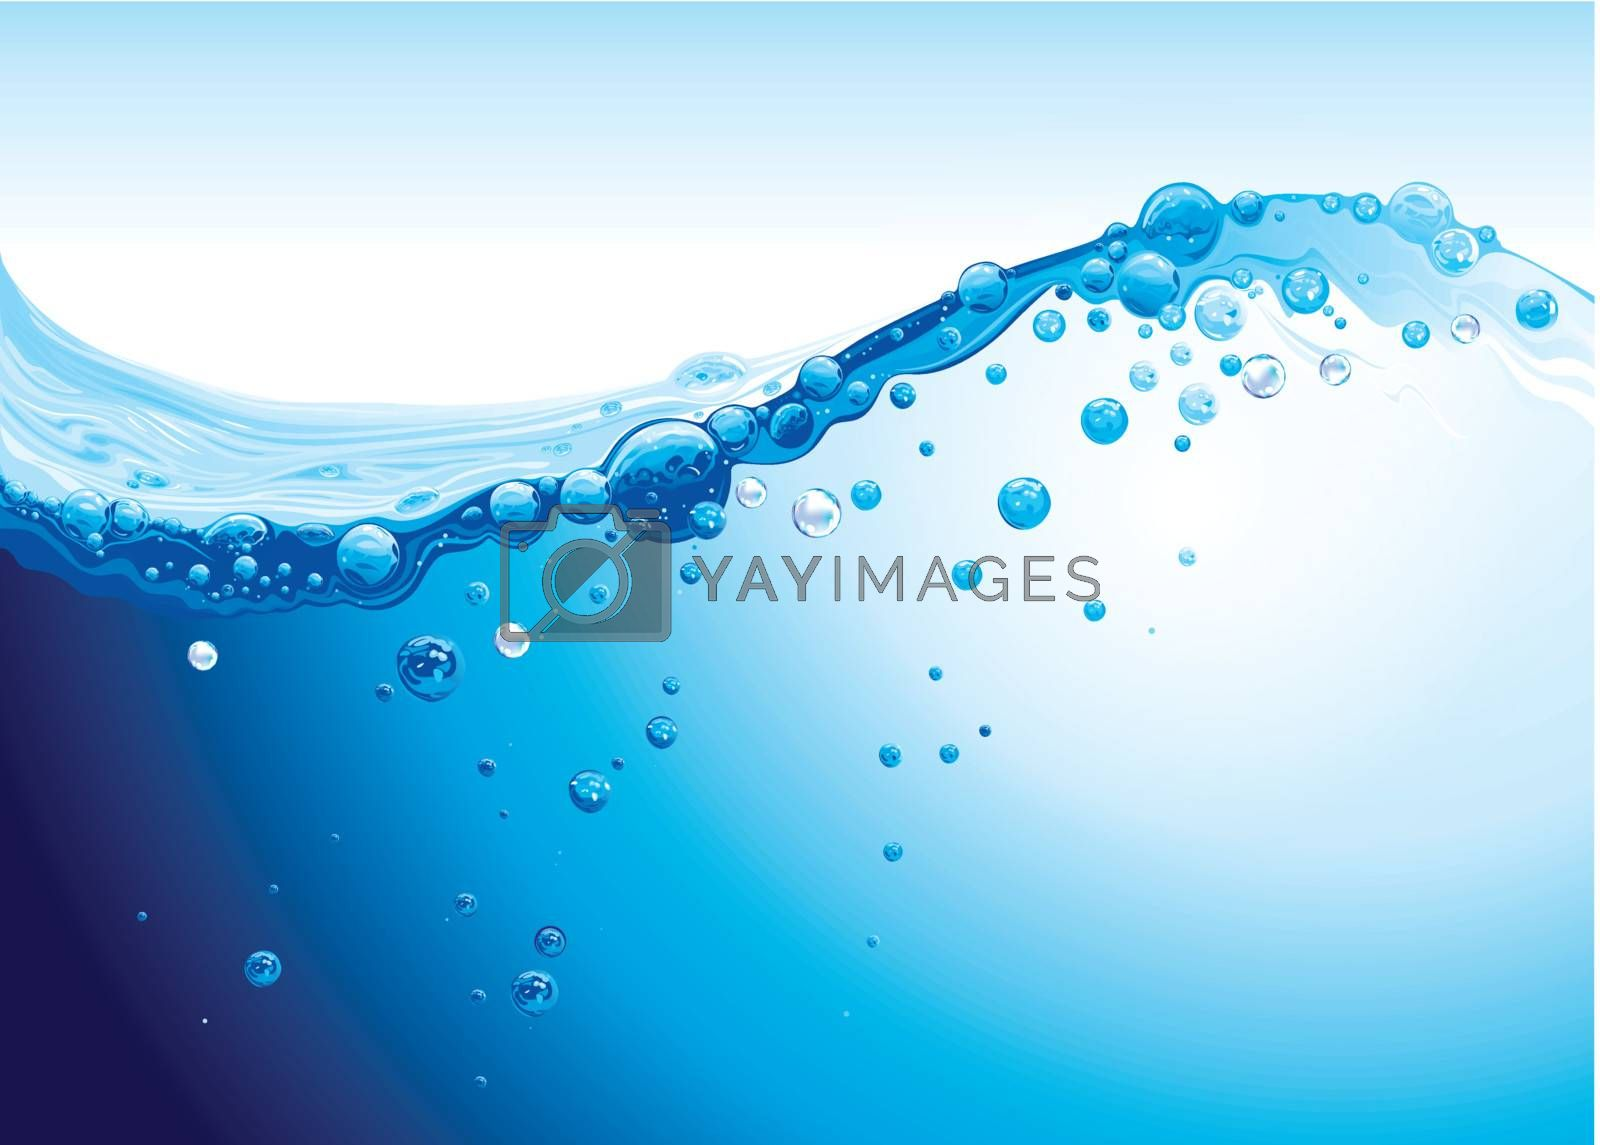 Royalty free image of strong water splashing with bubbles of air background by nirots